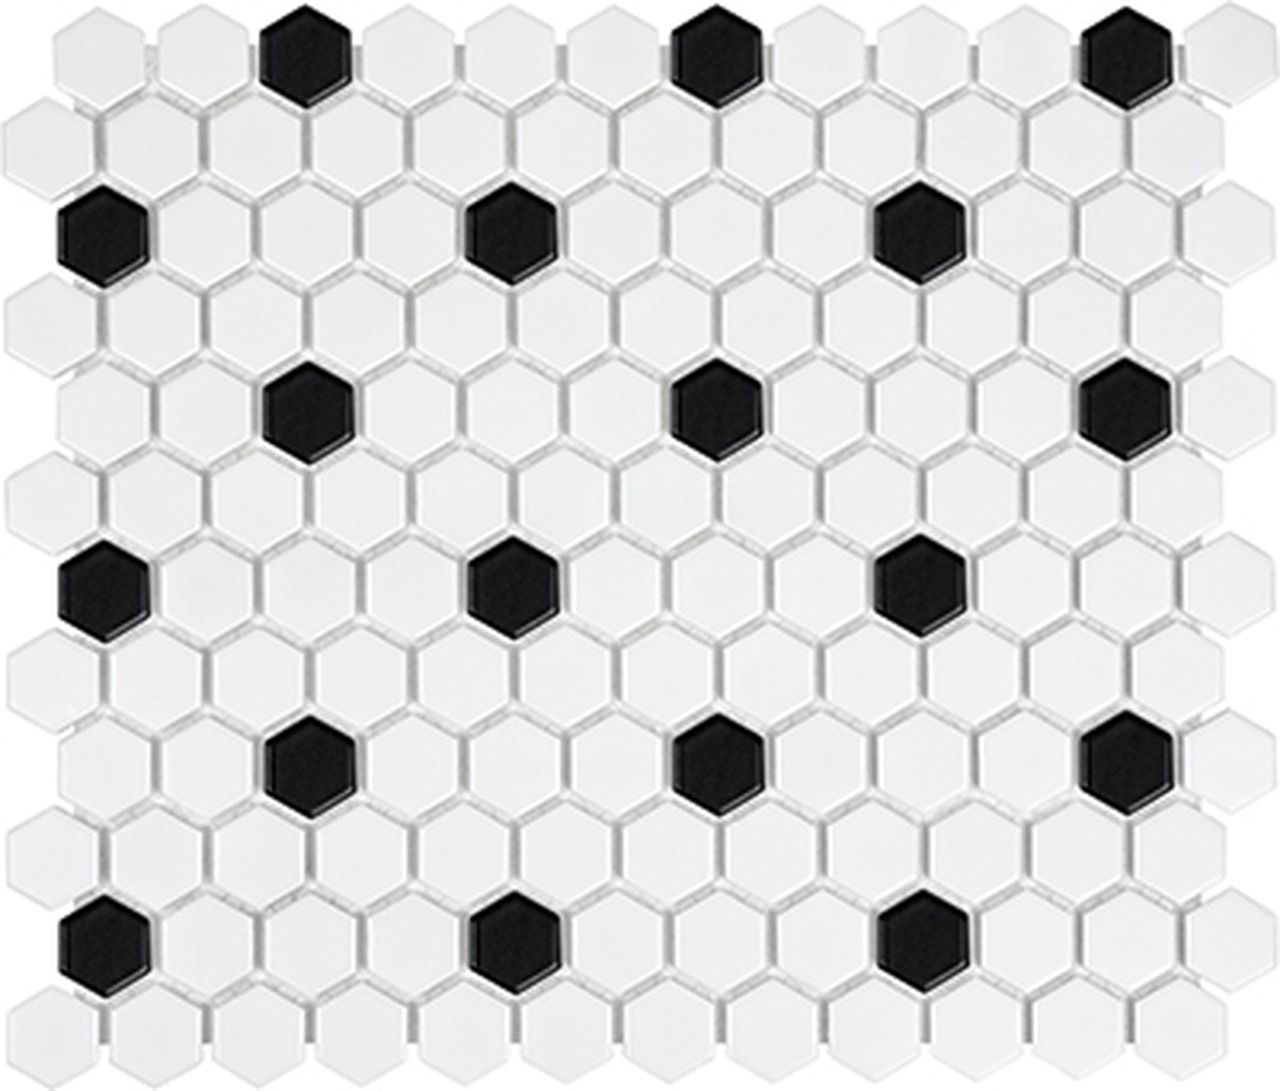 1 Hexagon Mosaic Tile Black White Rosette Pattern Matte Finish In 2020 Hexagonal Mosaic White Ceramic Tiles Hexagon Mosaic Tile